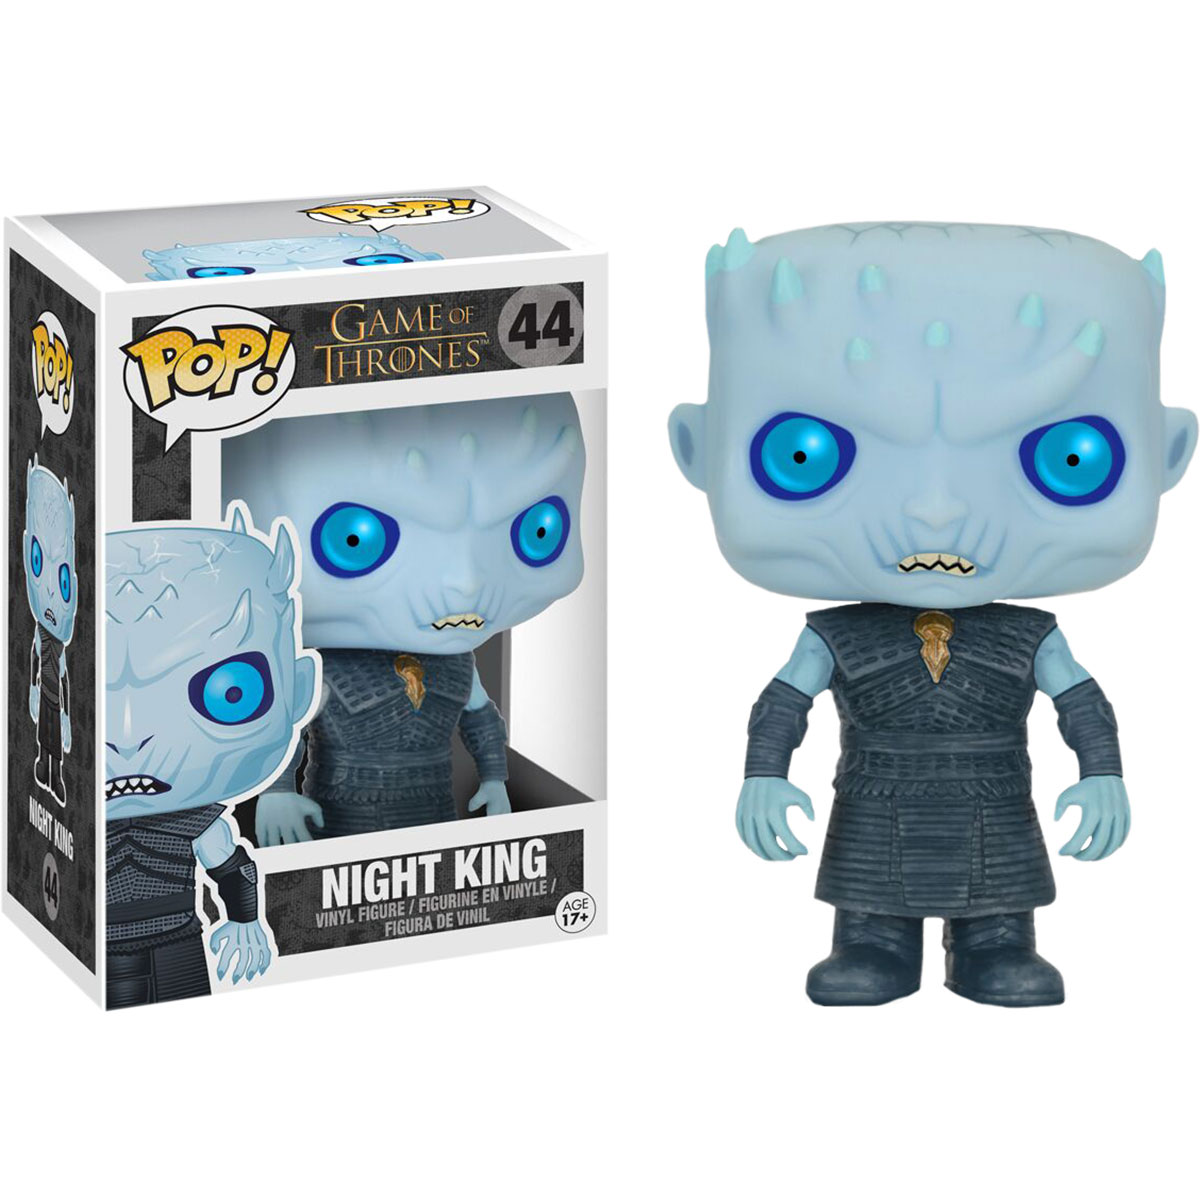 33 Night King From Game Of Thrones By Scepterdpinoy On: Funko Game Of Thrones Night King Pop! Vinyl Figure At